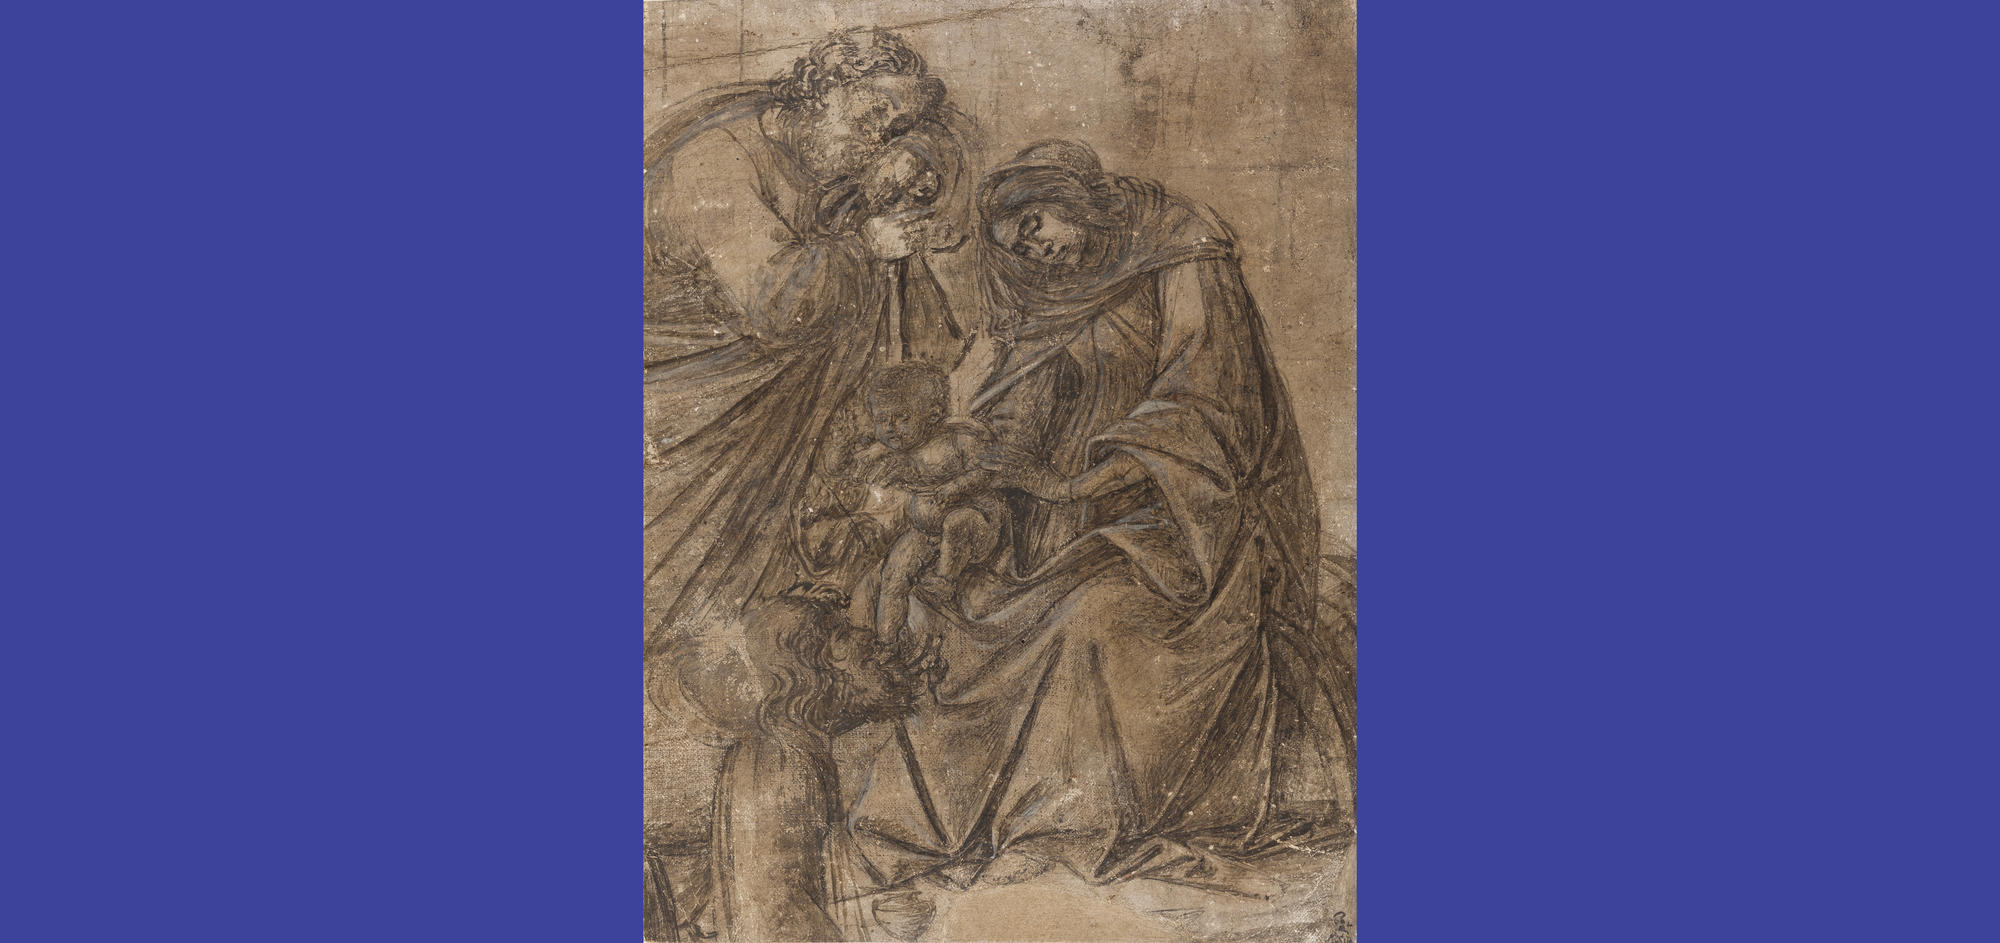 Sandro Botticelli (Italian, 1444 or 1445-1510), Virgin and Child with Saint Joseph and a Magus (fragment of The Adoration of the Magi), about 1500. Brush and brown egg tempera, heightened with white, over charcoal or chalk on prepared linen, 30.9 x 23.4 cm. The Fitzwilliam Museum, Cambridge. Ω The Fitzwilliam Museum, Cambridge